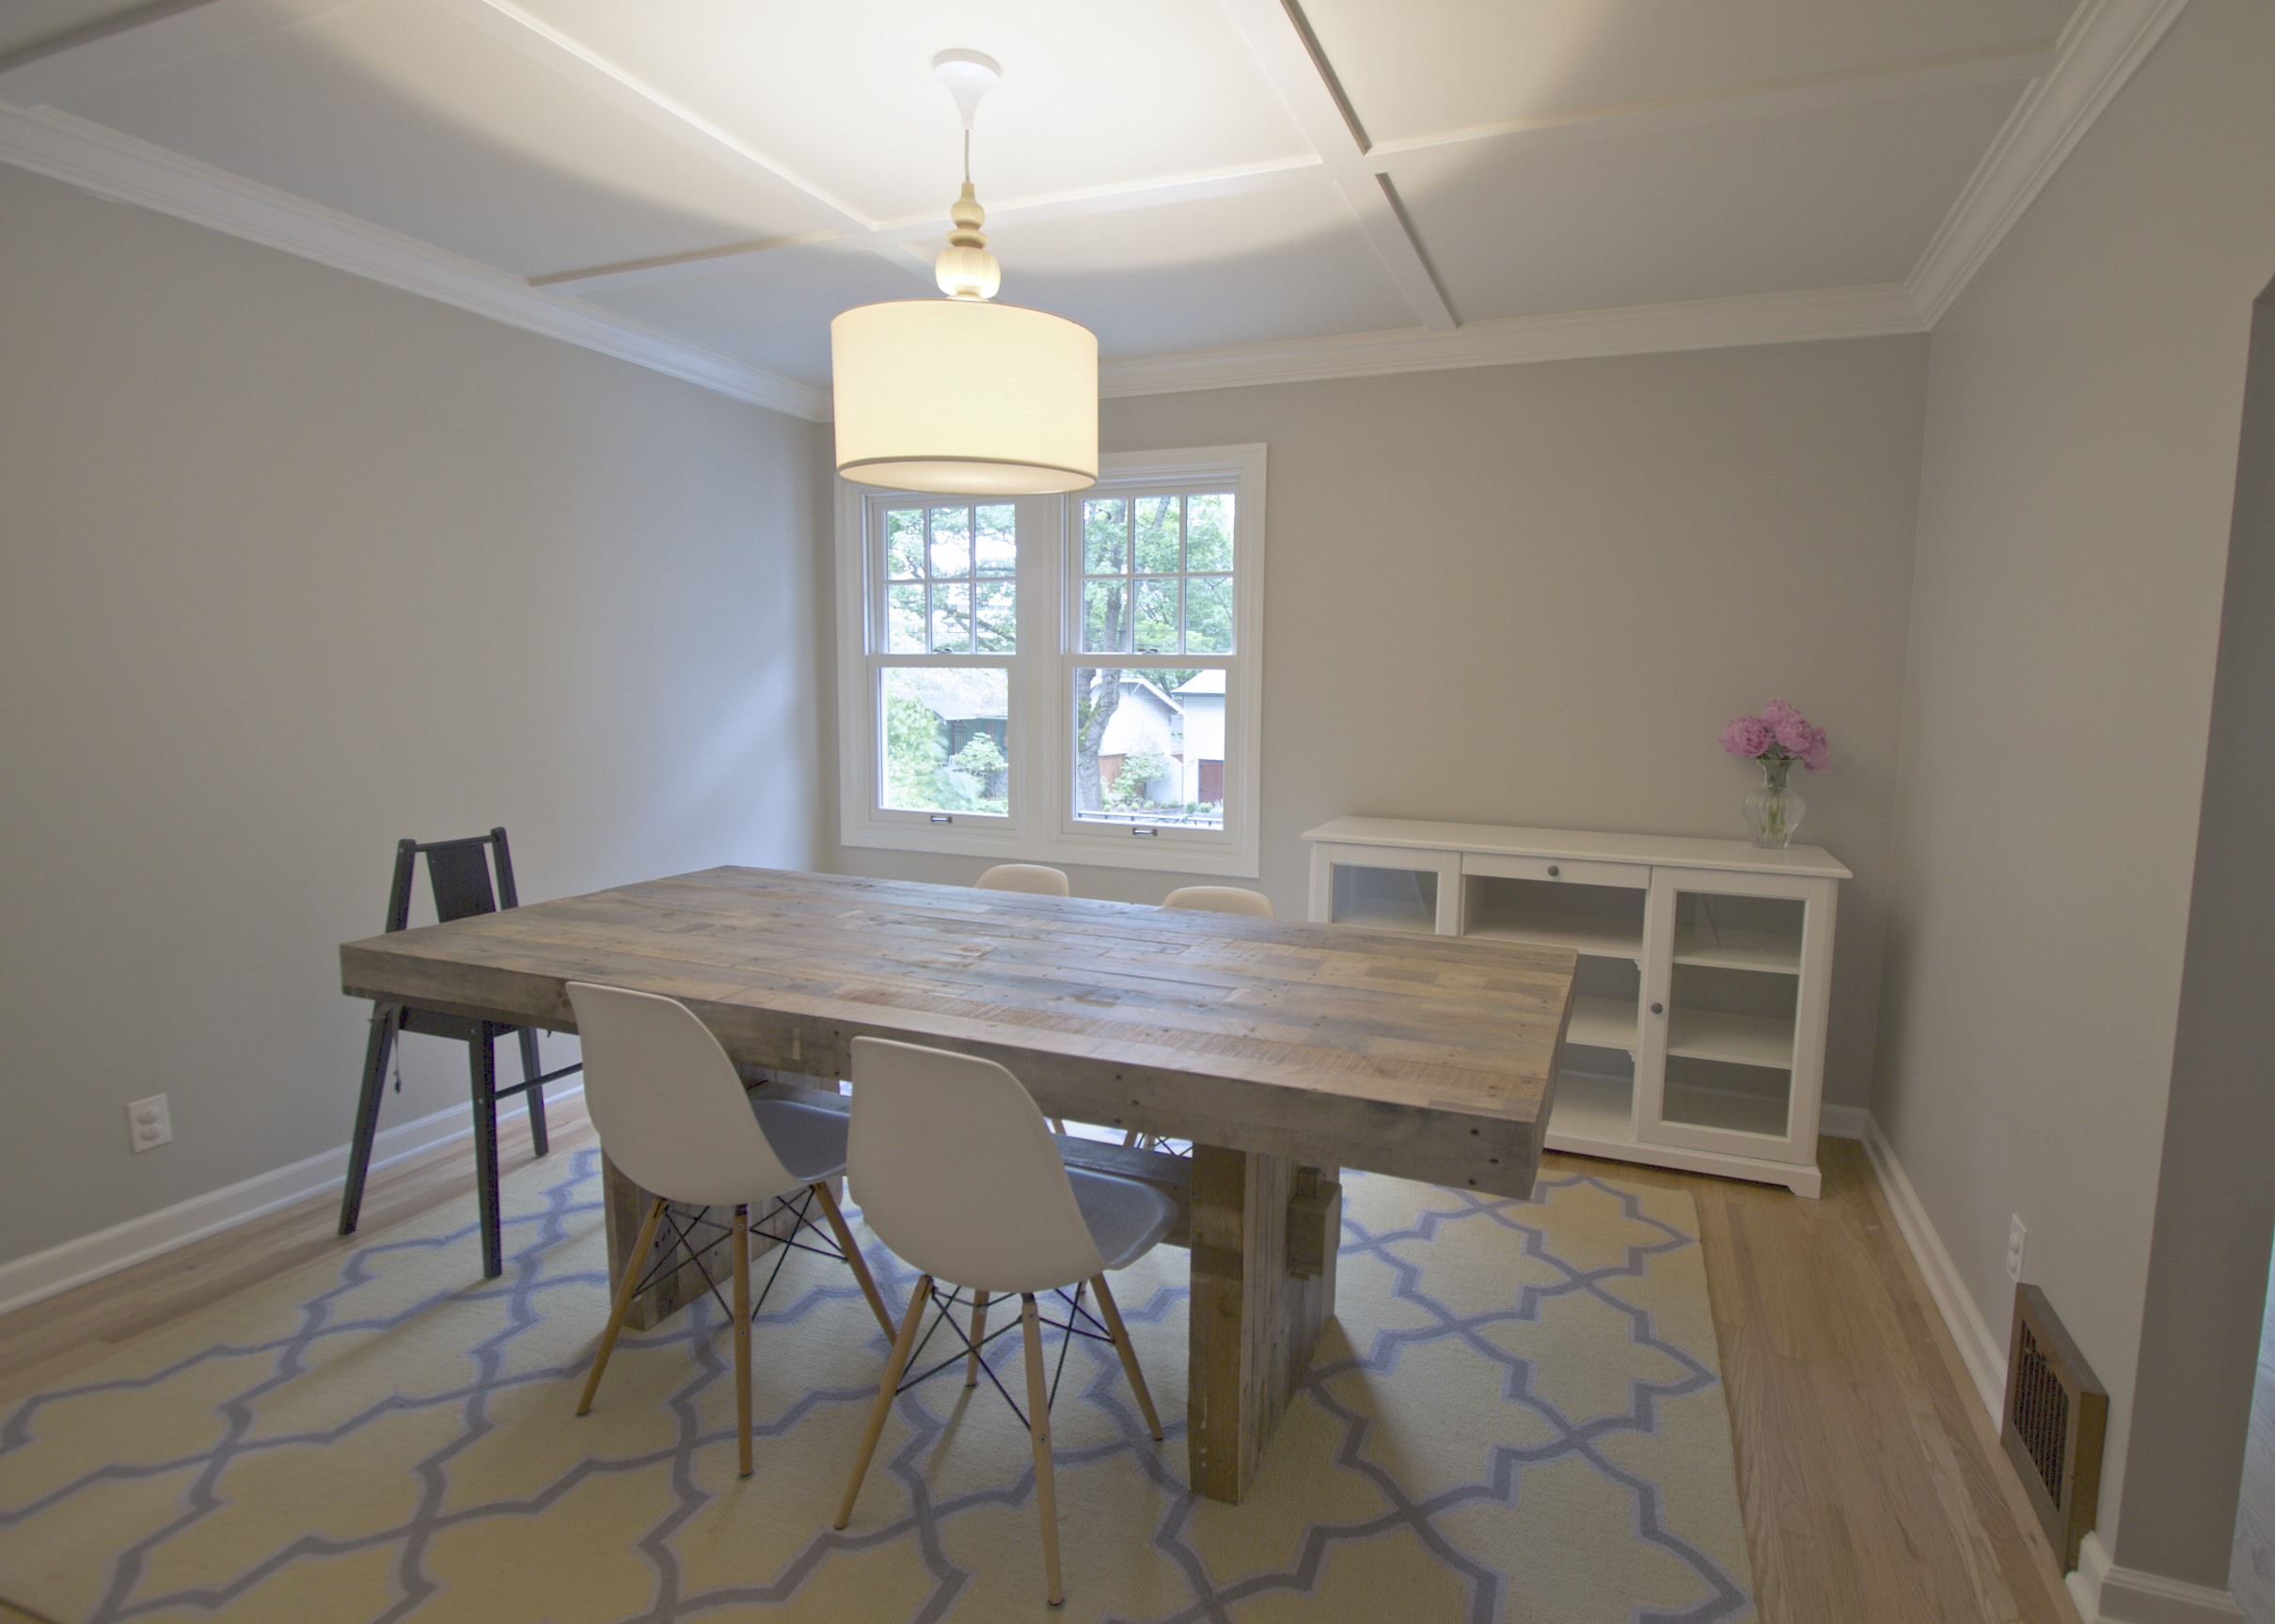 Dining room ikea contemporary style home living - Contemporary living room decorating ideas to put your heart and soul in it ...